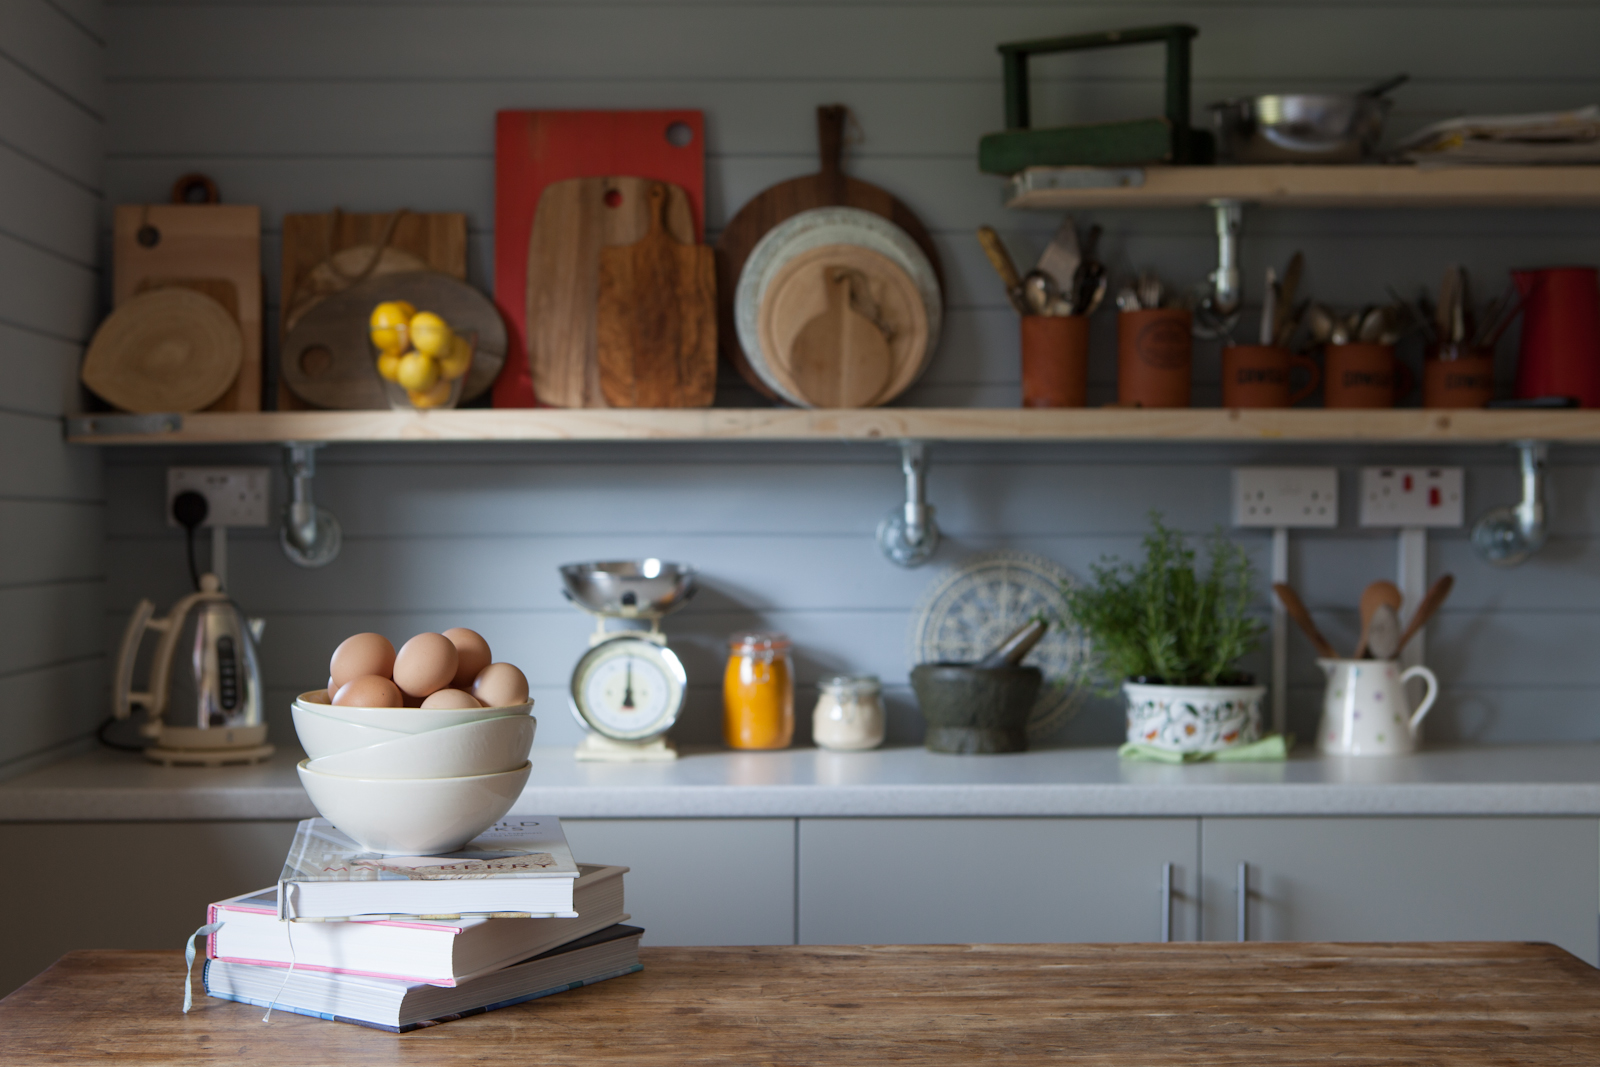 Food Photography Studio with Kitchen and accessories